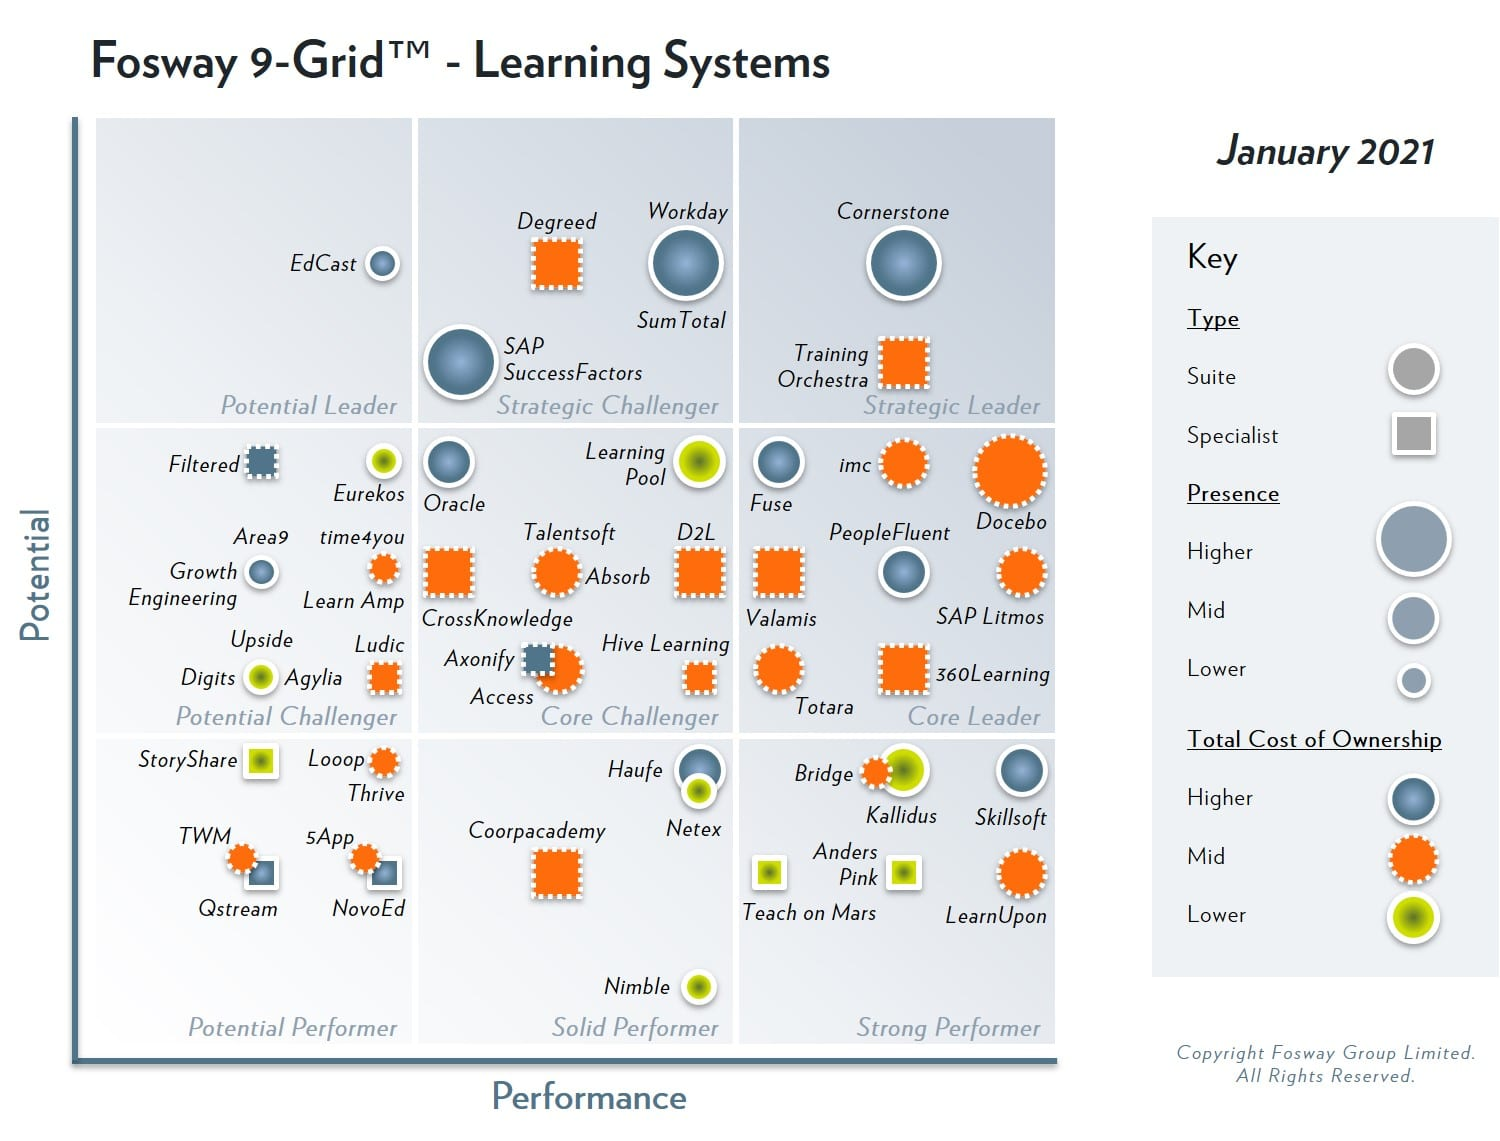 2021 Fosway 9-grid learning systemspecialists training orchestra